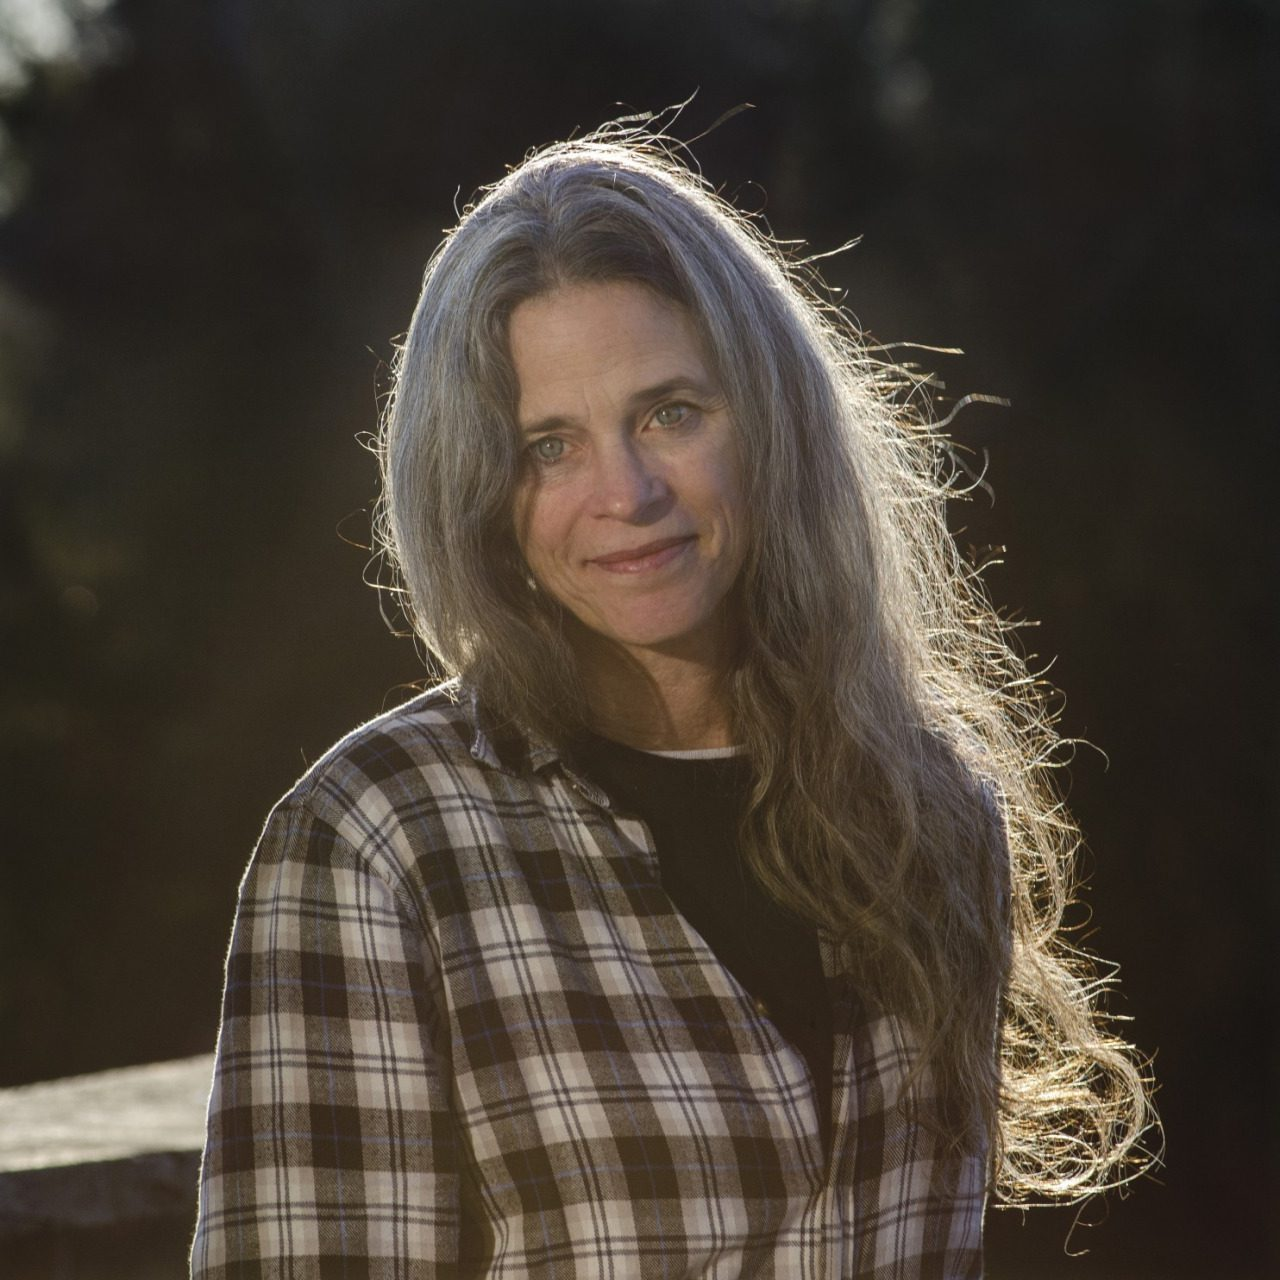 BW_GR036 : Sally Mann - Iconic Images